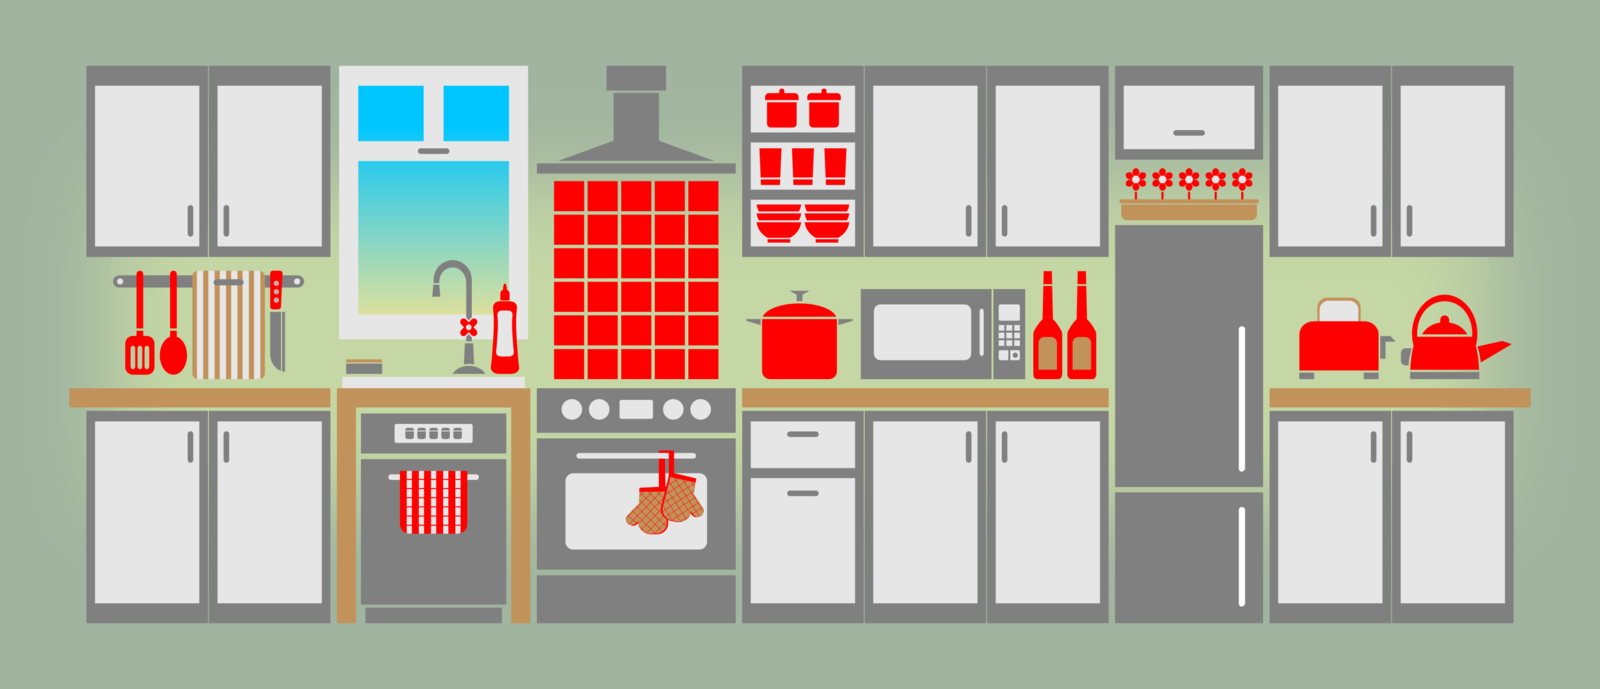 Simple Kitchen By Viscious Speed On Deviantart